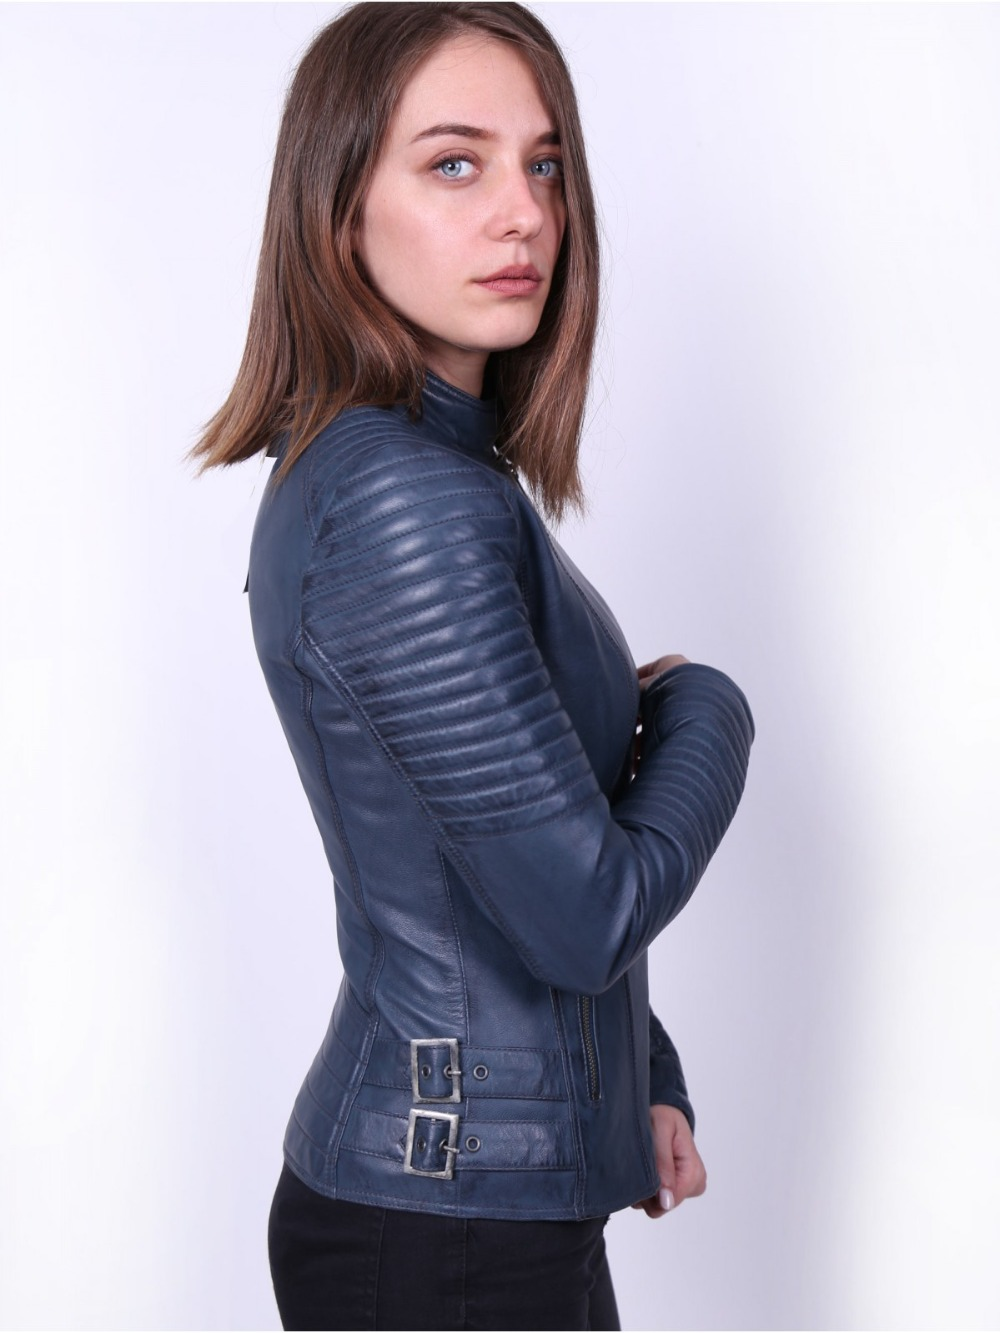 VAINAS Brand Julie High Quality Women Genuine Leather Jacket For Women Real Leather Jacket Motorcycle Jackets Biker Jackets